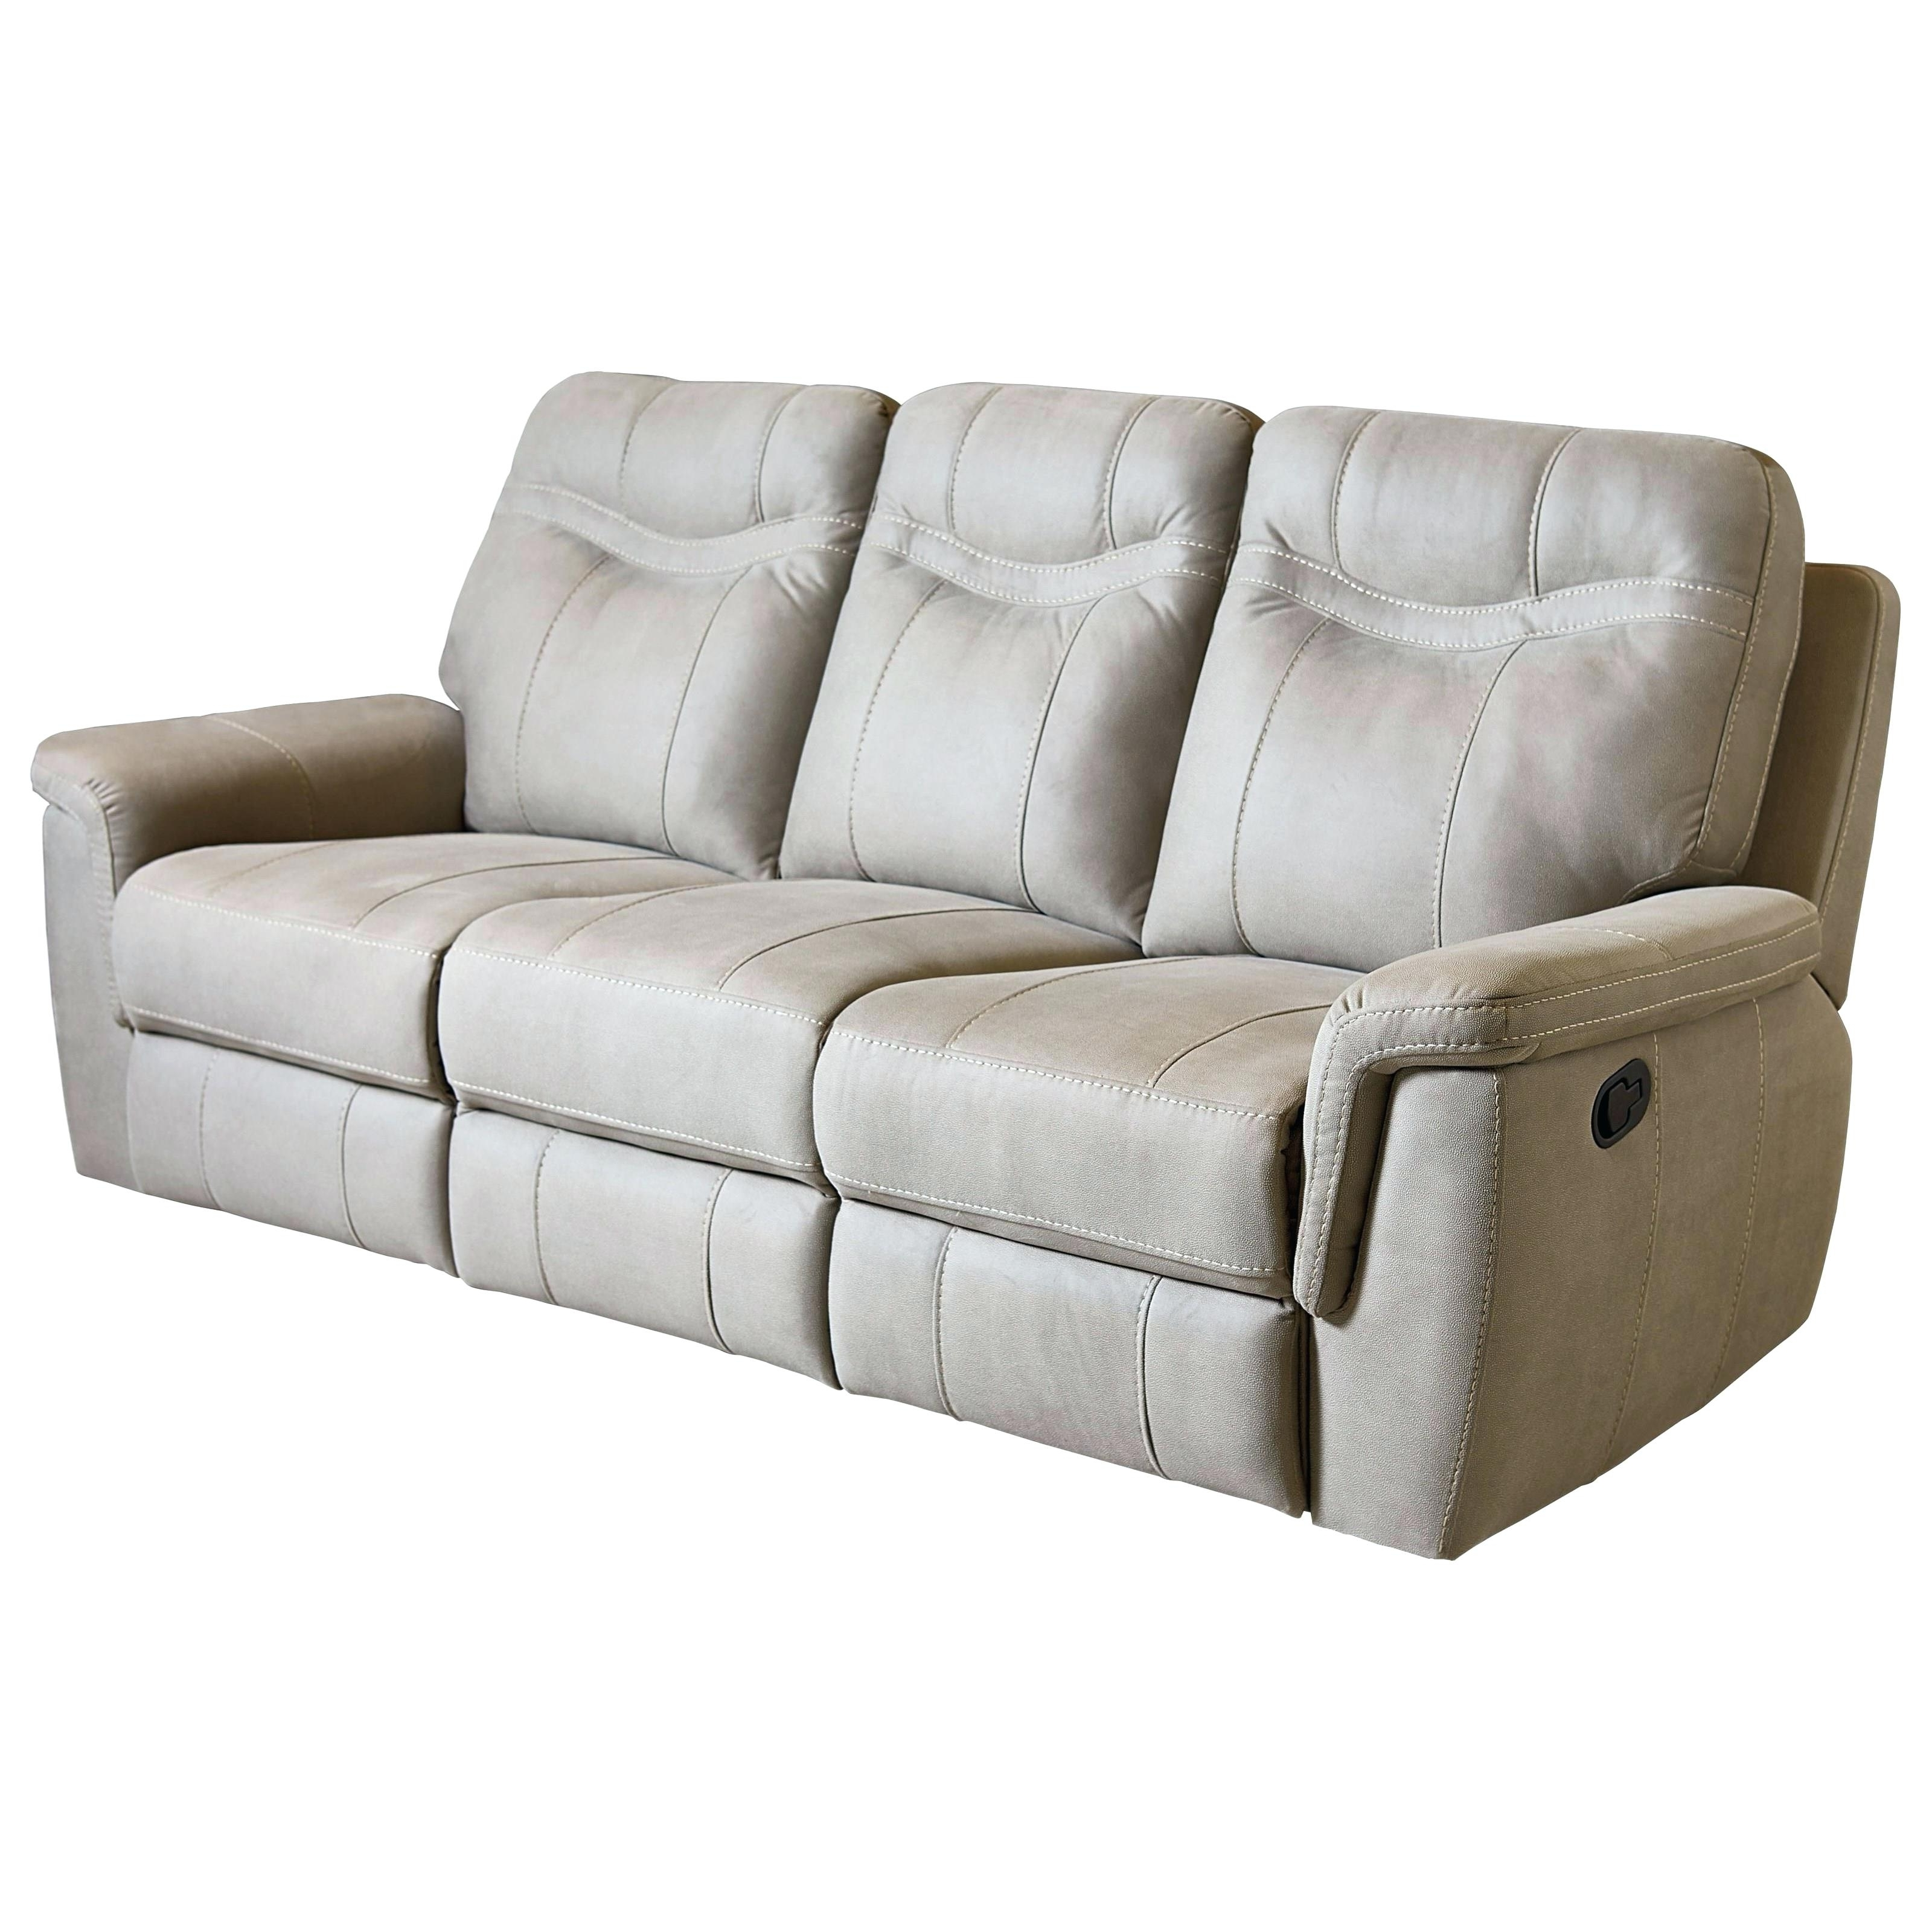 Recent Kijiji London Sectional Sofas Within Reclining Sofas Sofa Leather Brown Recliner For Sale In London (View 12 of 15)